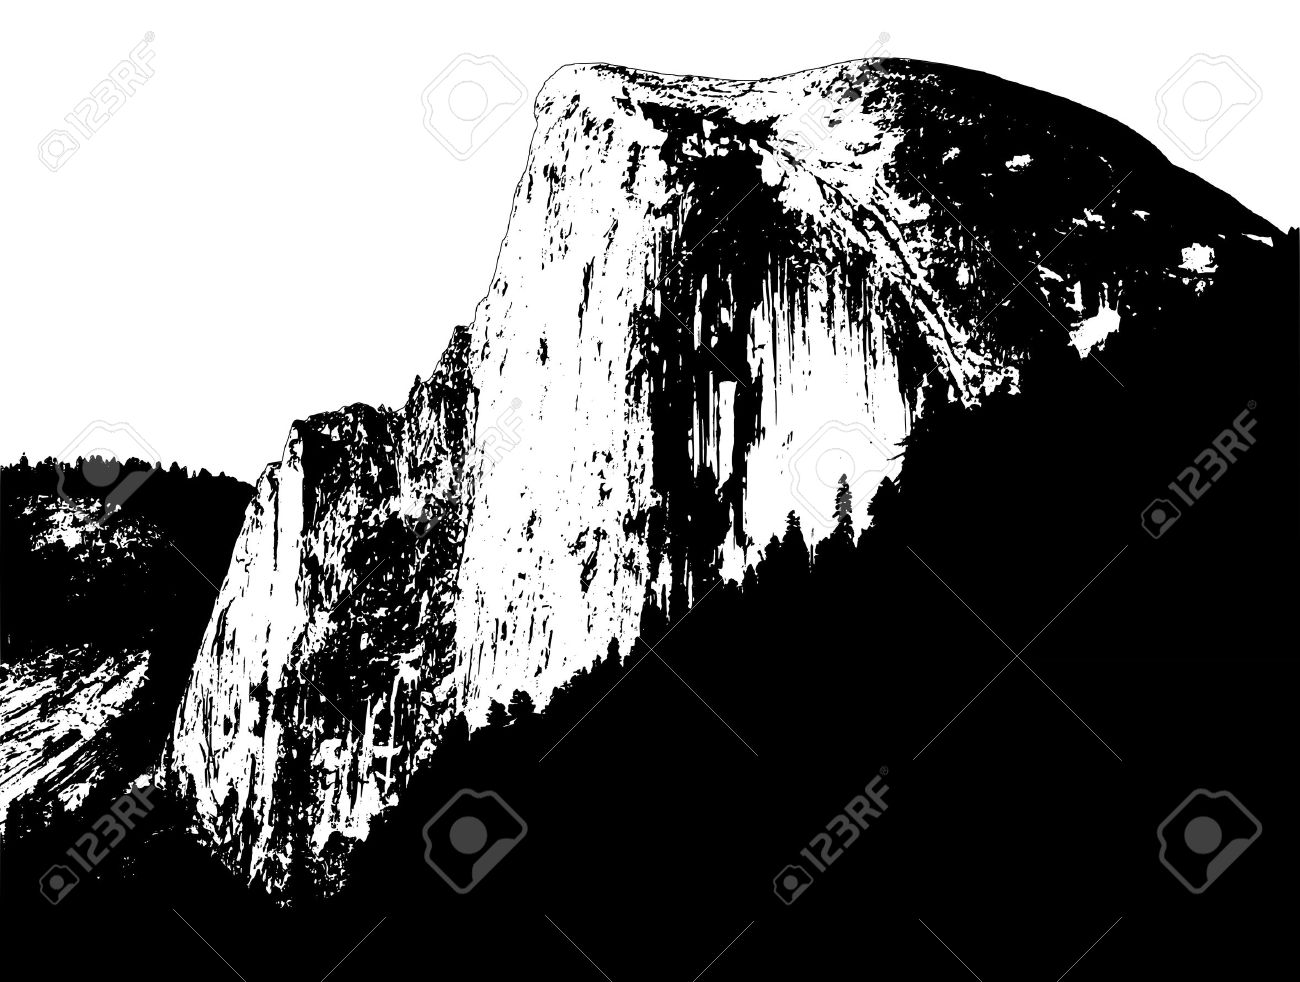 Half Dome clipart #4, Download drawings